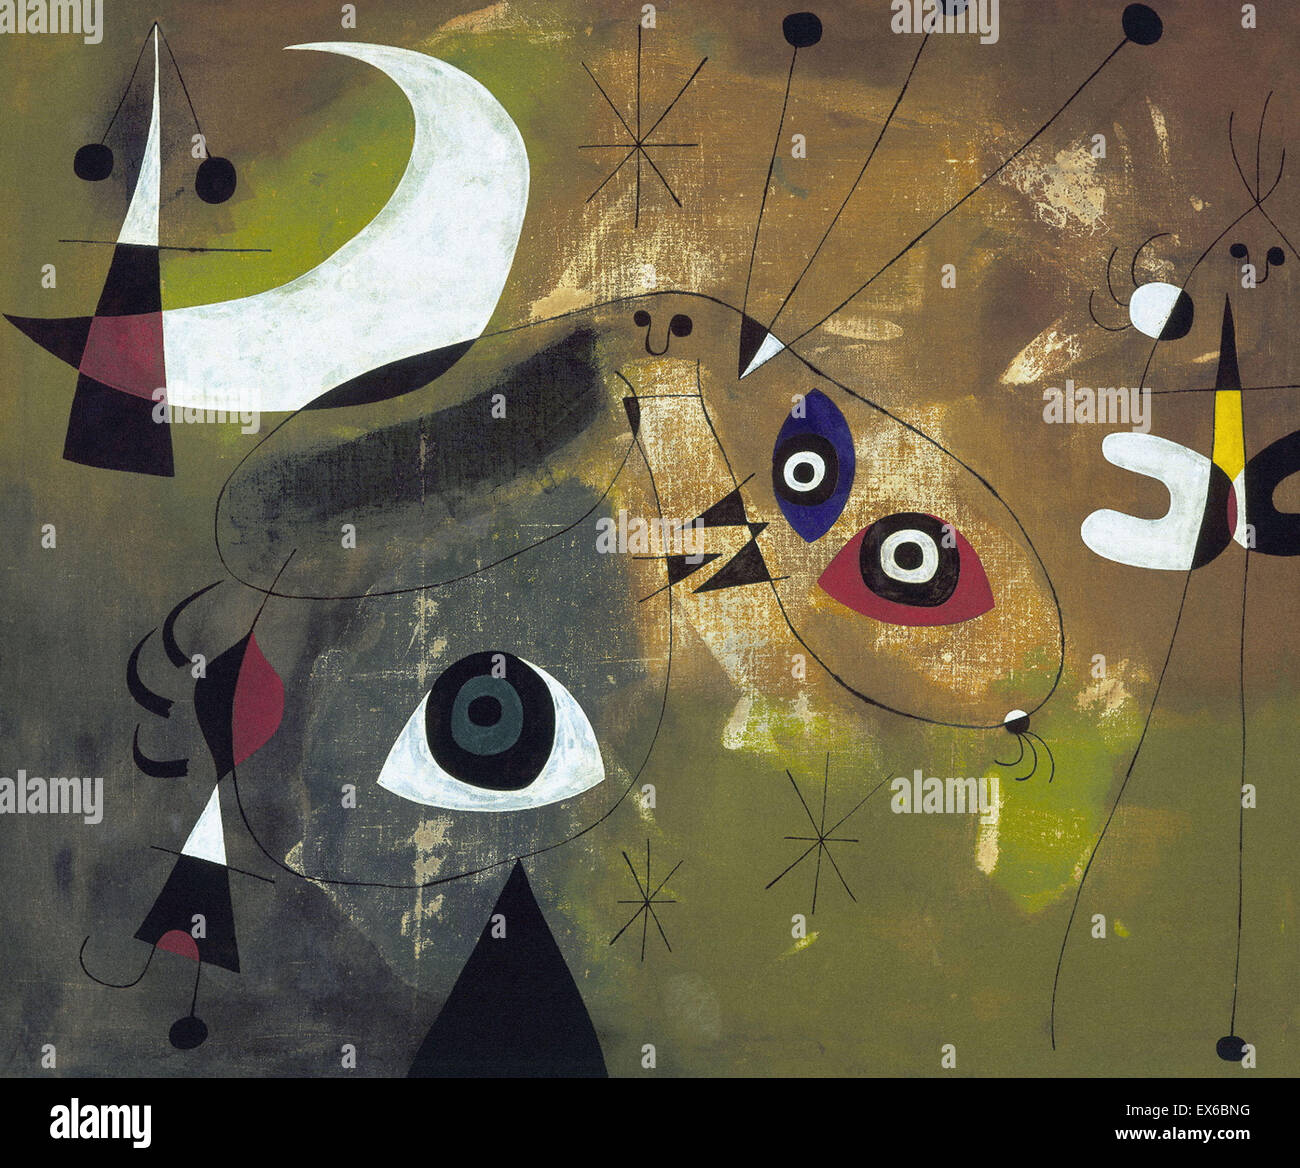 Joán Miró  Painting (Personage and Moon) - Stock Image